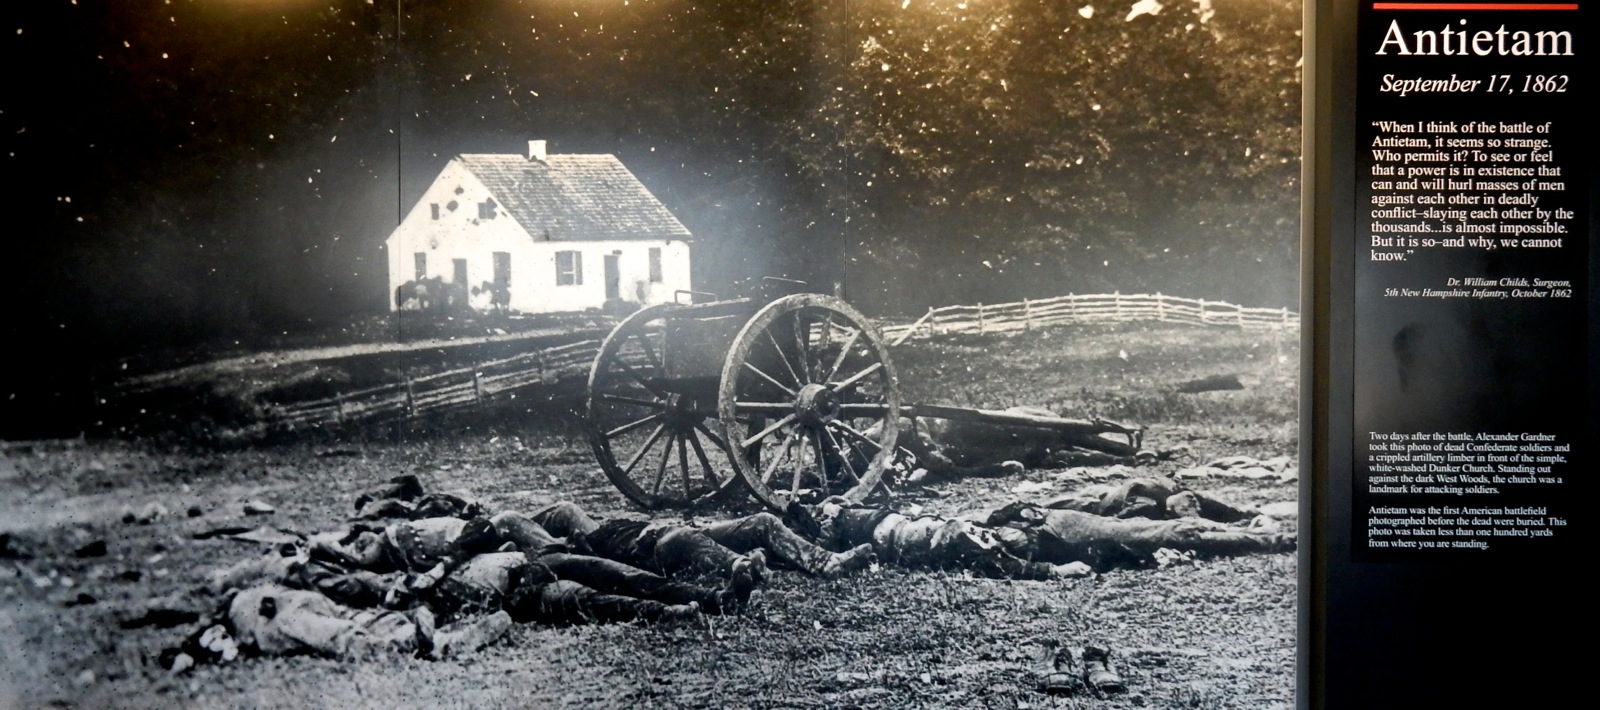 battle of antietam Read the battle of antietam: the bloodiest day by ted alexander with rakuten kobo the heavy fog that shrouded antietam creek on the morning of september 17, 1862, was disturbed by the boom of federal ar.